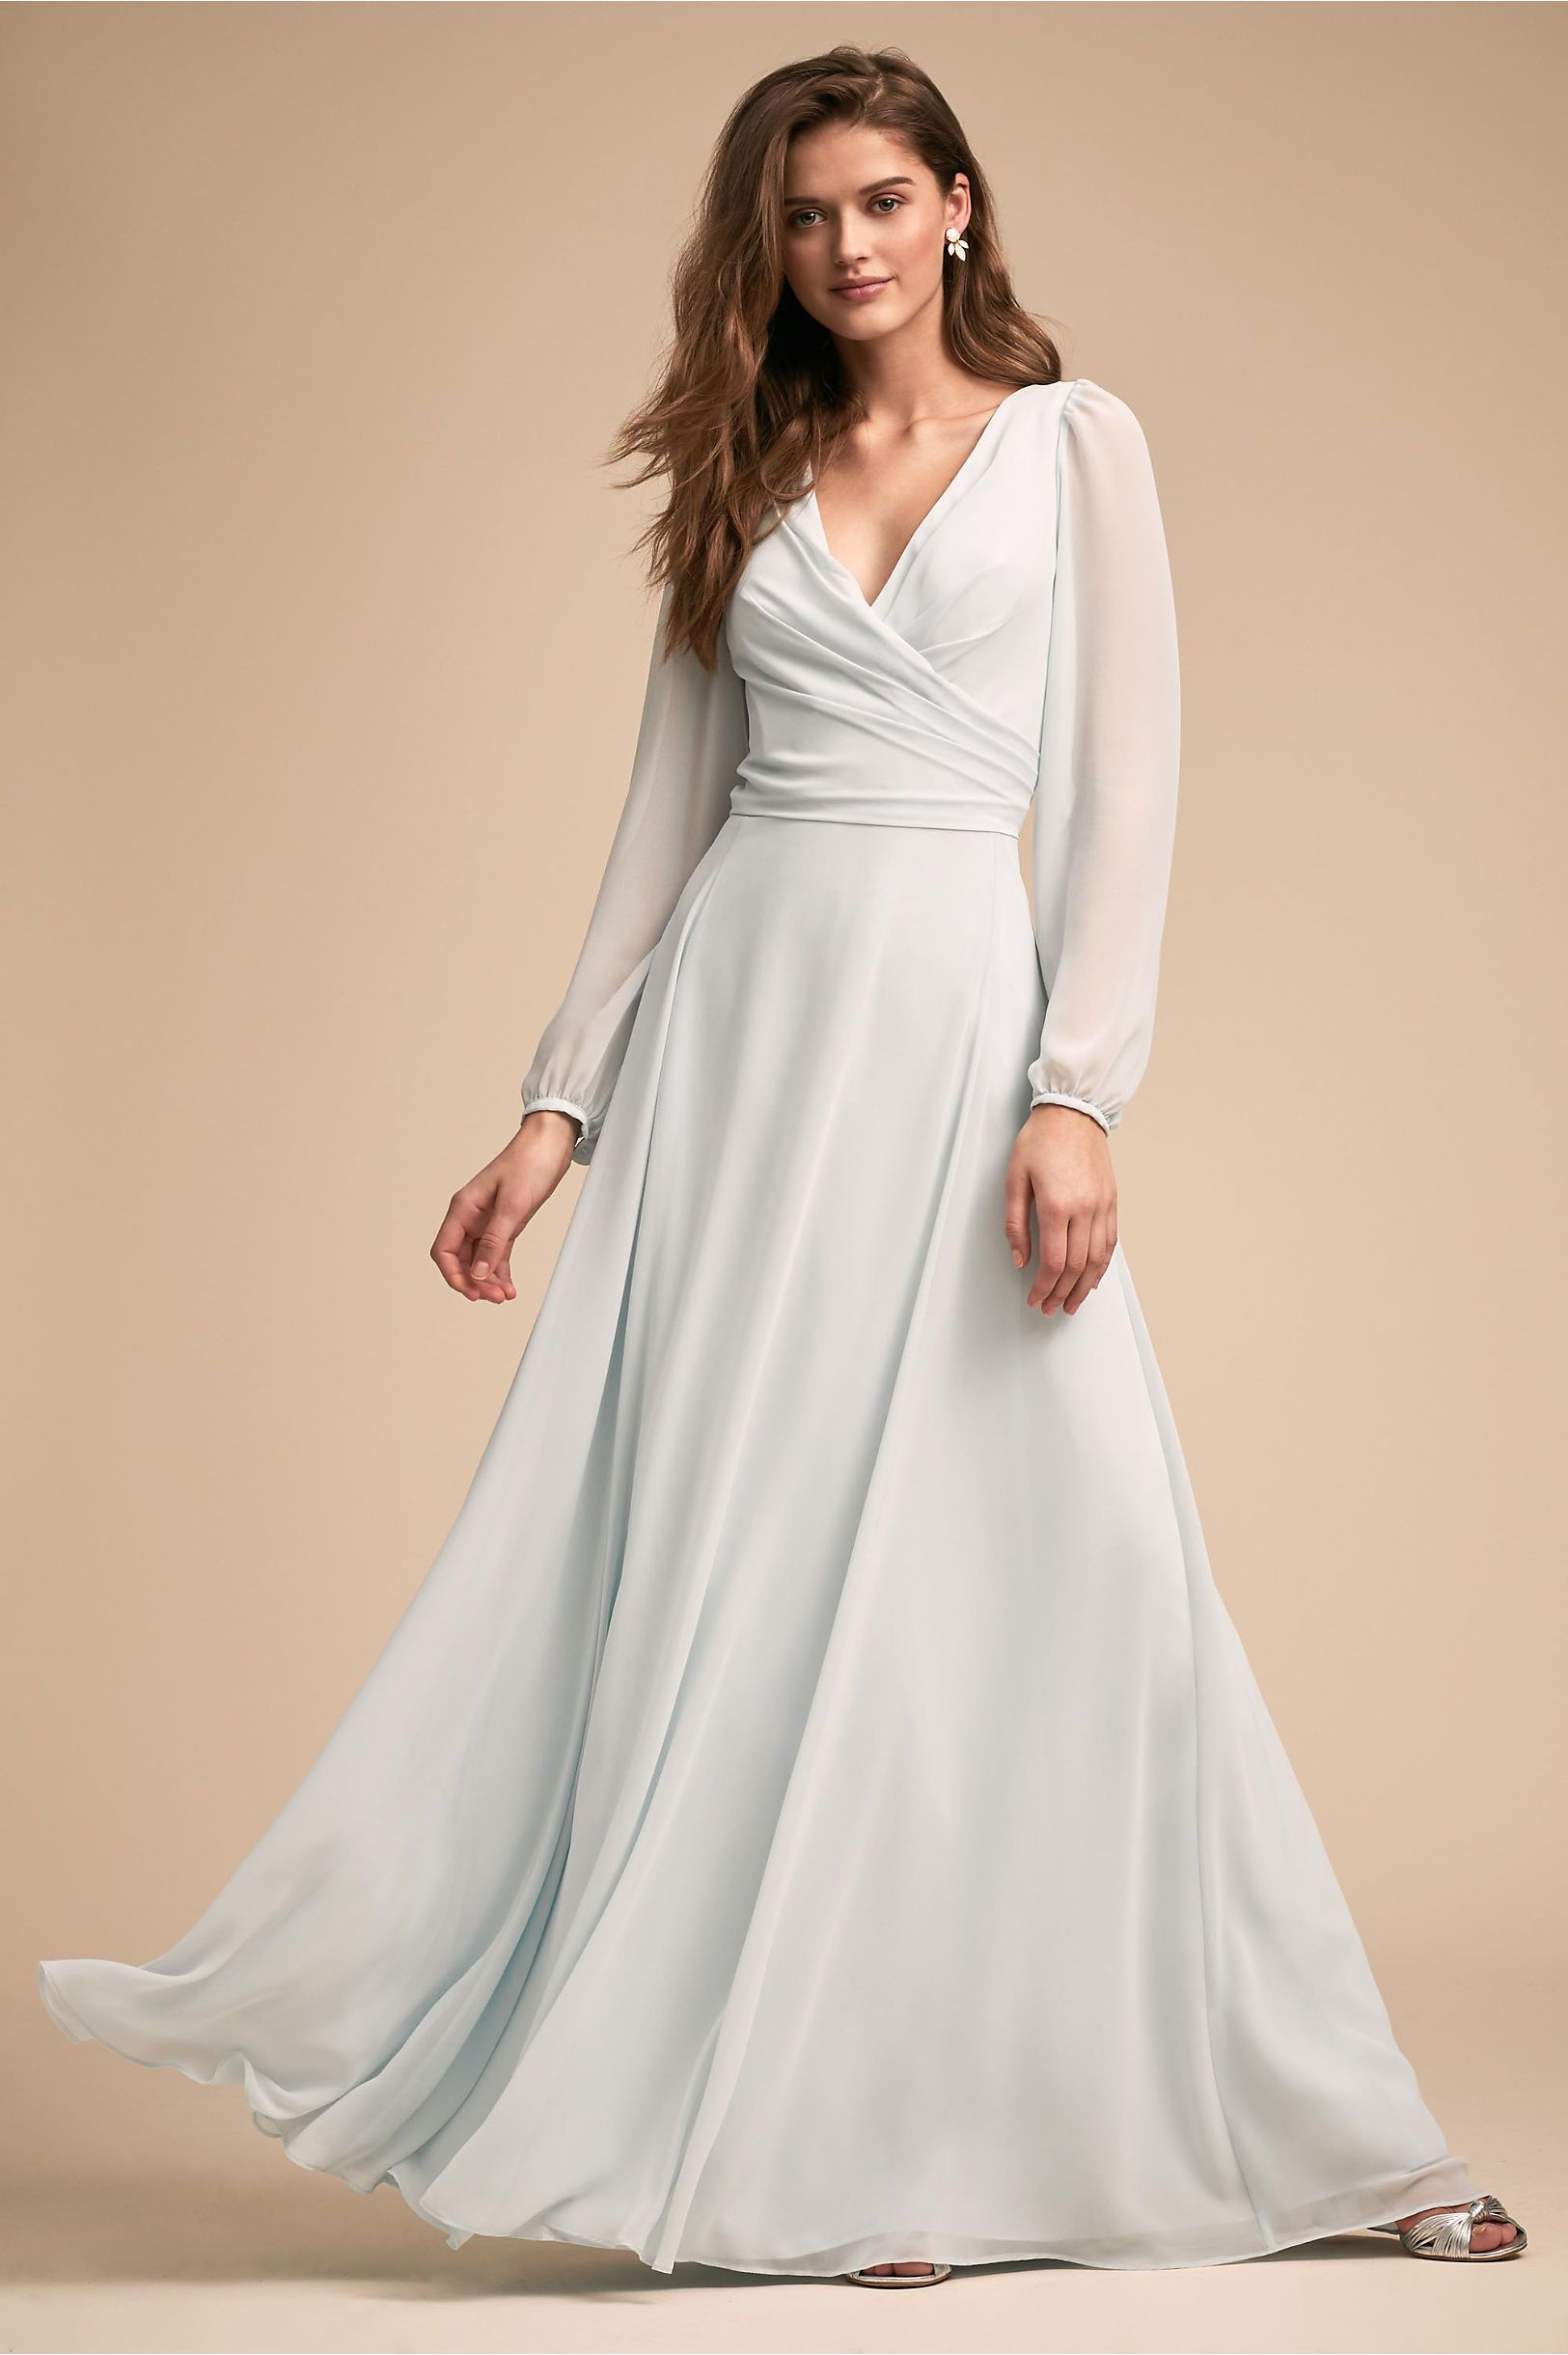 e456d0d9f03 BHLDN s Watters Nova Dress in Light Blue